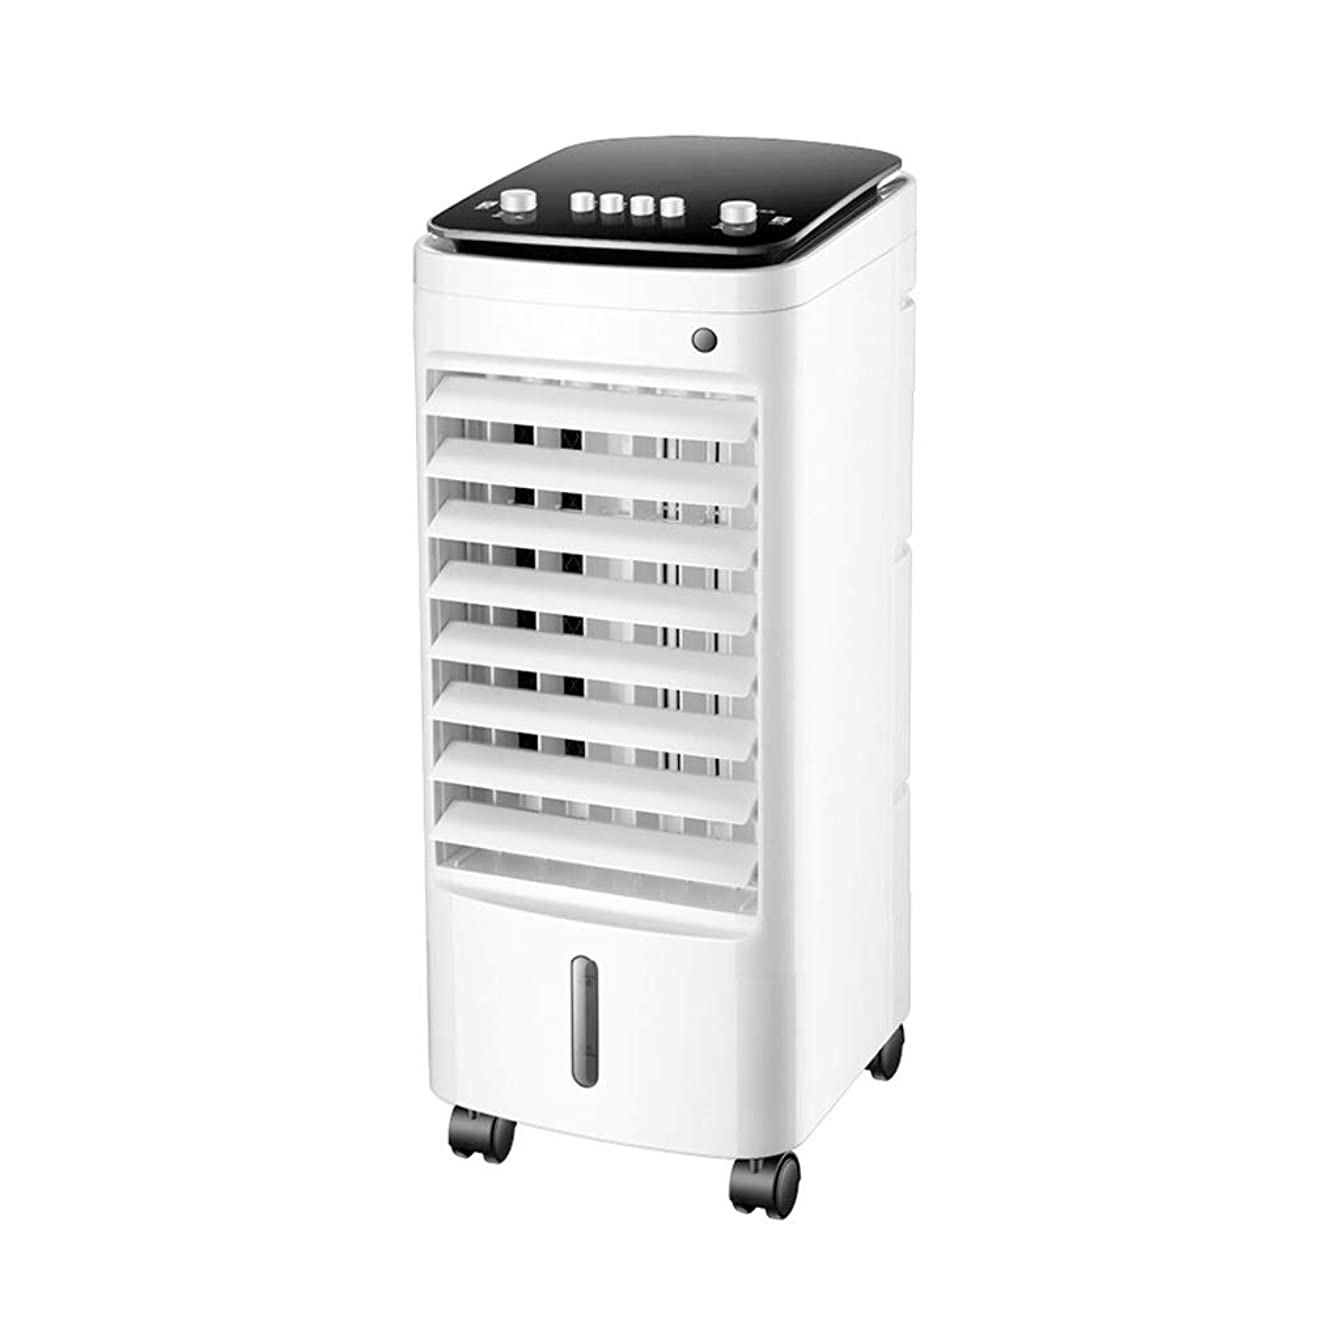 Space coolers Portable Water-Cooled Air Coolers Move Evaporative Air Conditioner Living Room Bedroom White